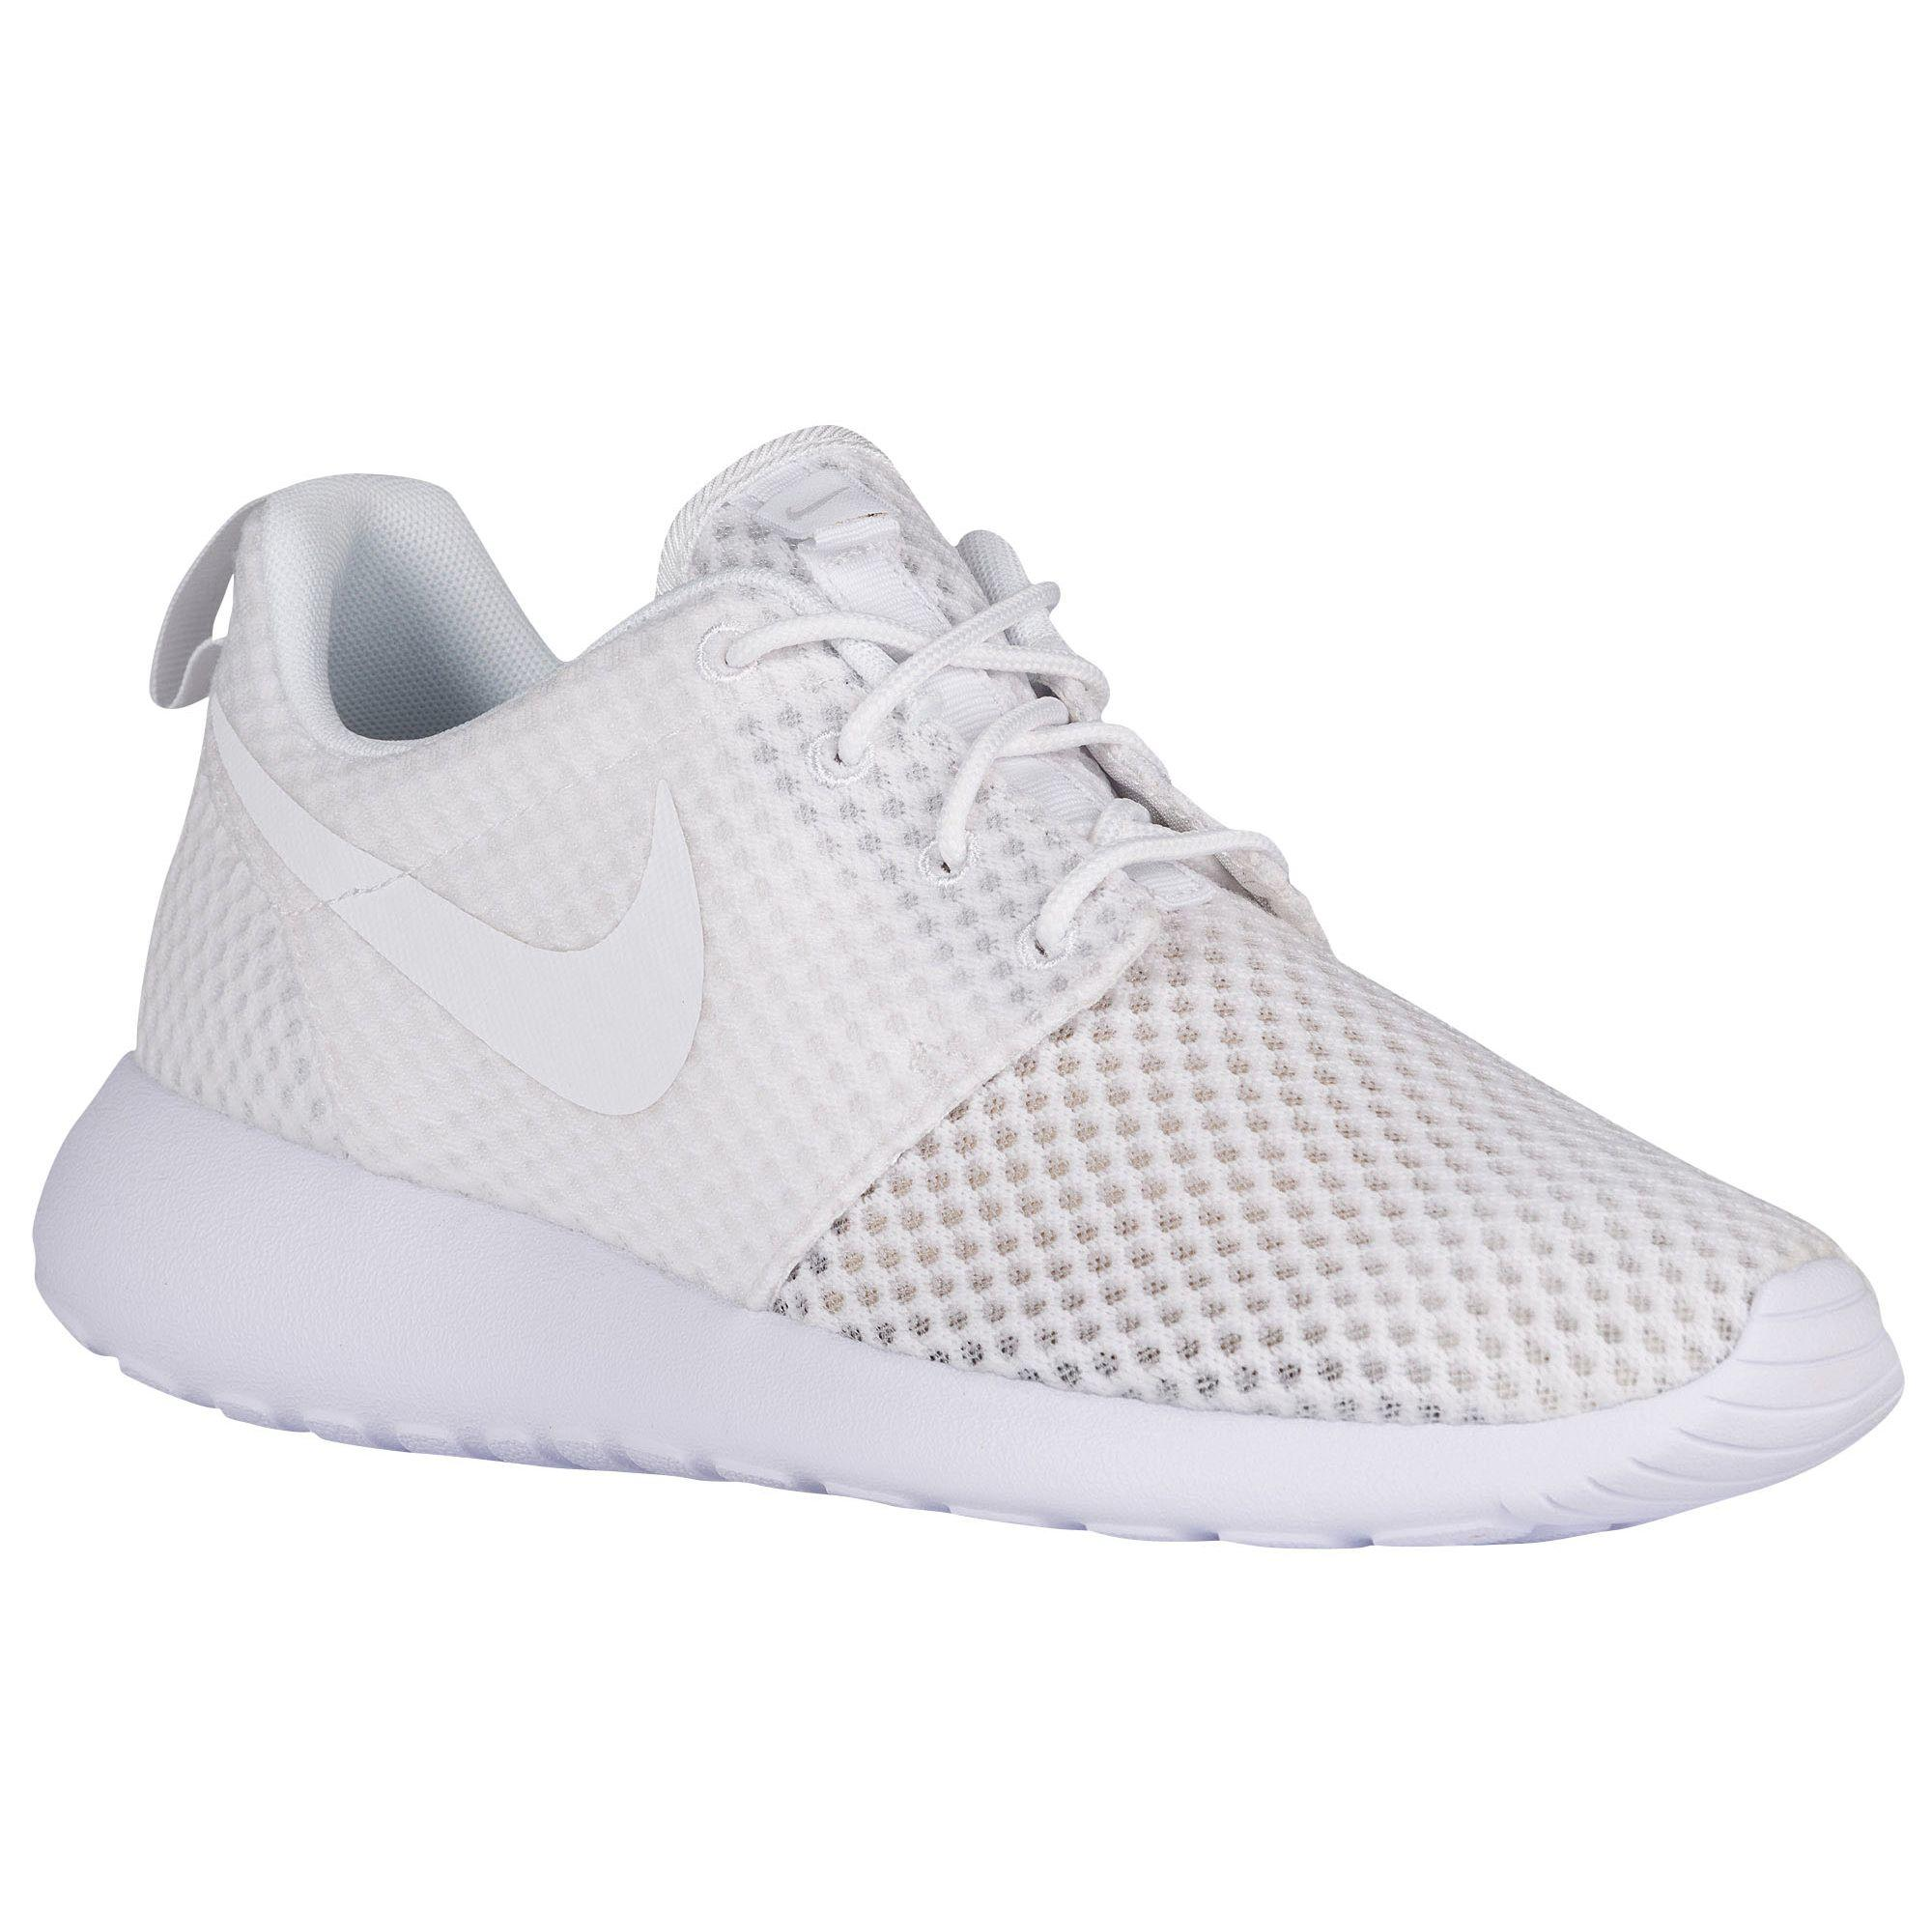 Everywhere you look, you can see guys rocking a pair of men's Roshe Ones. They're one of the most versatile shoes from Nike. Wear them with or without socks, dress them up or down — the Roshe One .